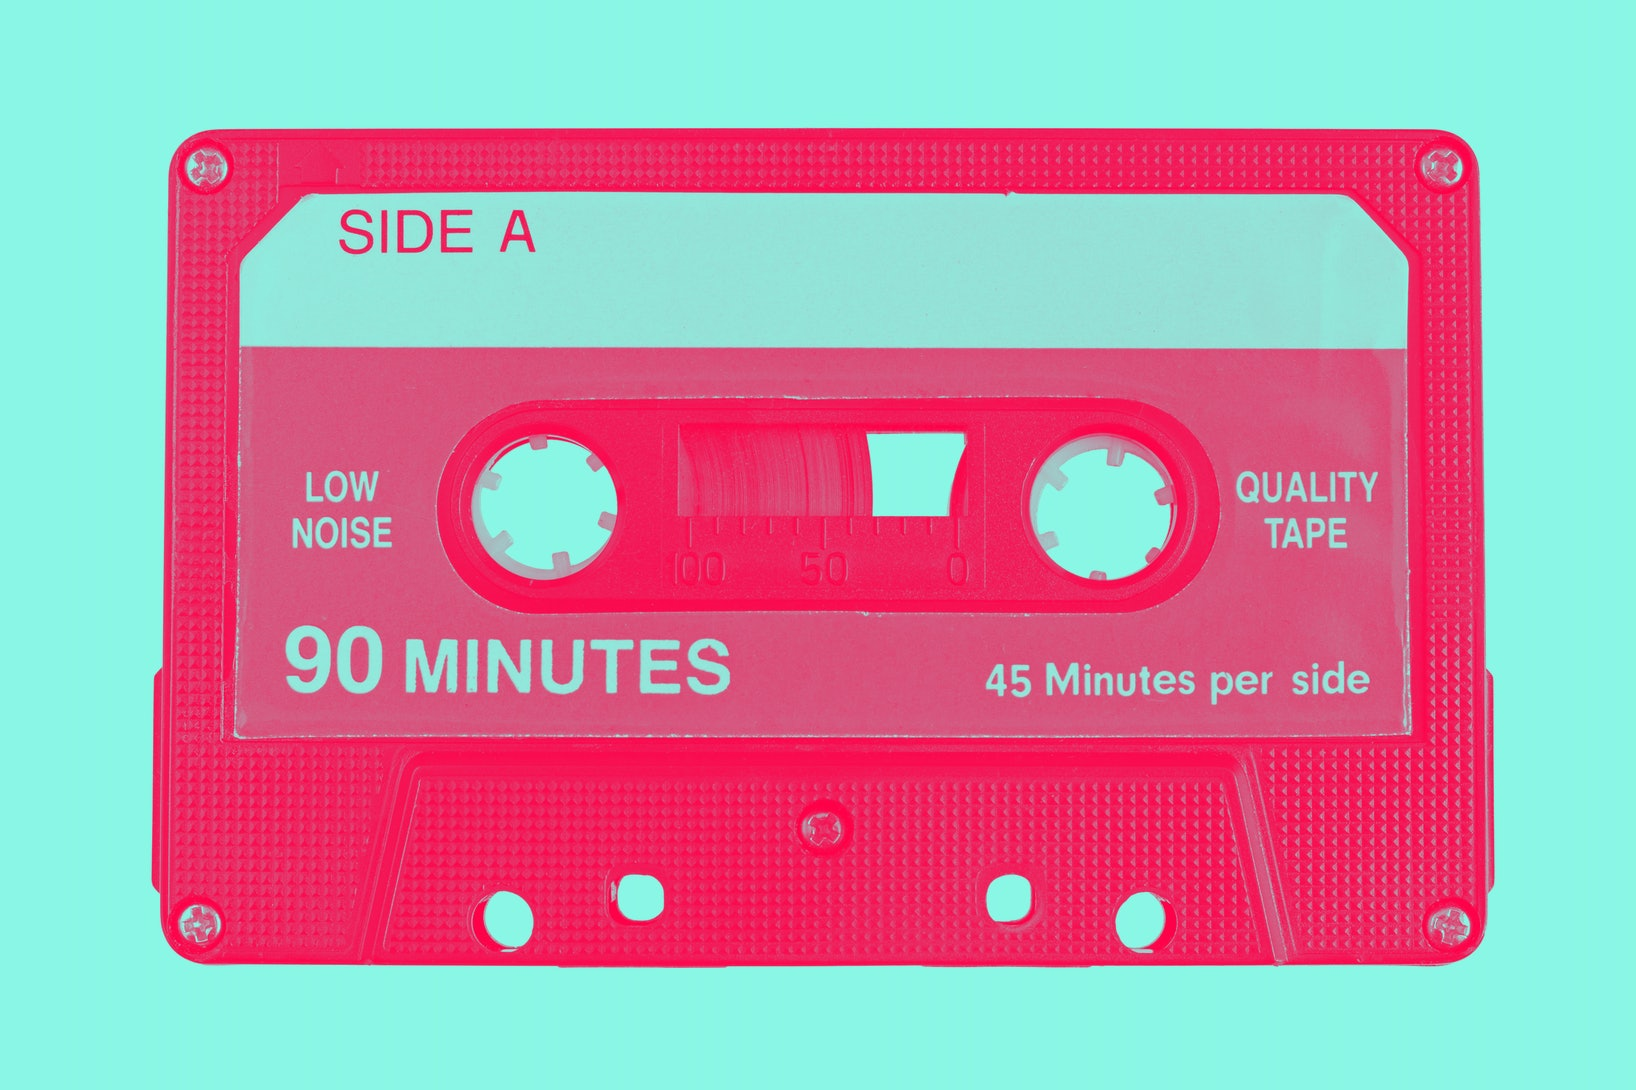 Audio cassette tape isolated, red and white colors